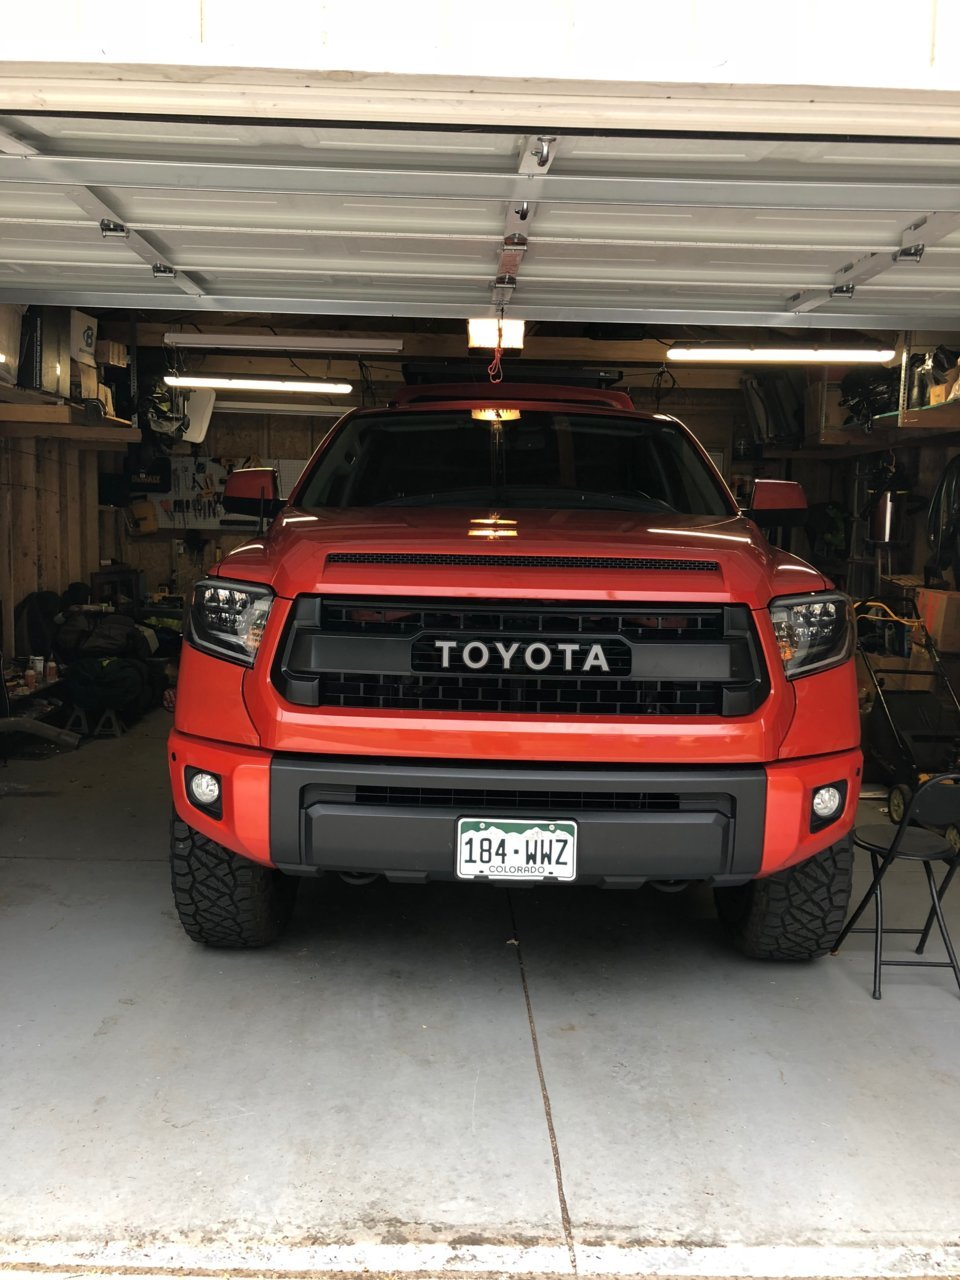 Toyota Tacoma 2015-2018 Service Manual: Main Switch Illumination Circuit